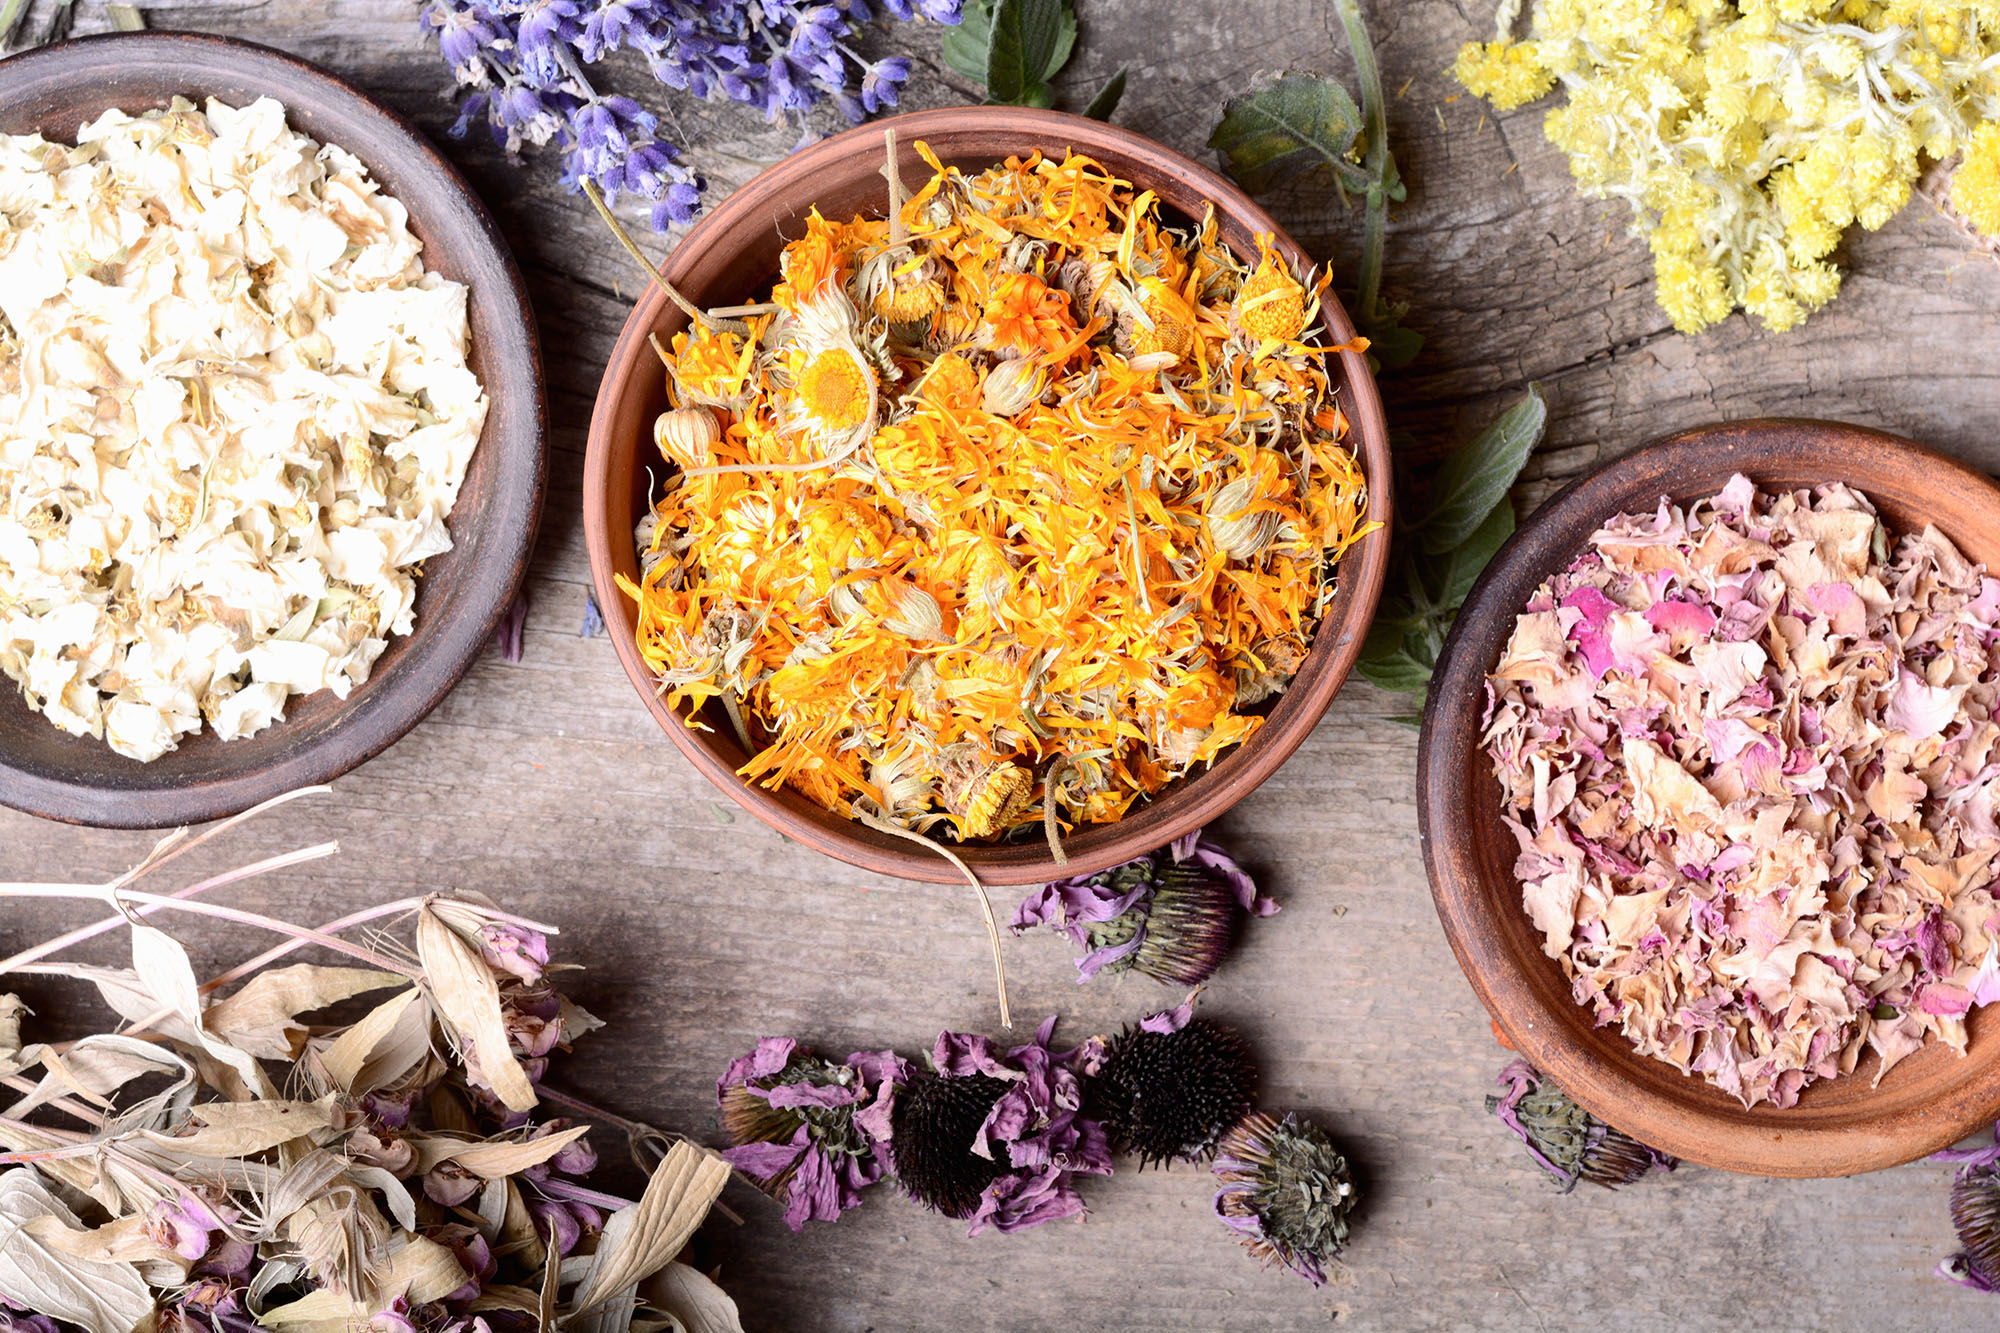 Herbal Health Workshop: The Yoga of Teas, Baths and Aromatherapy